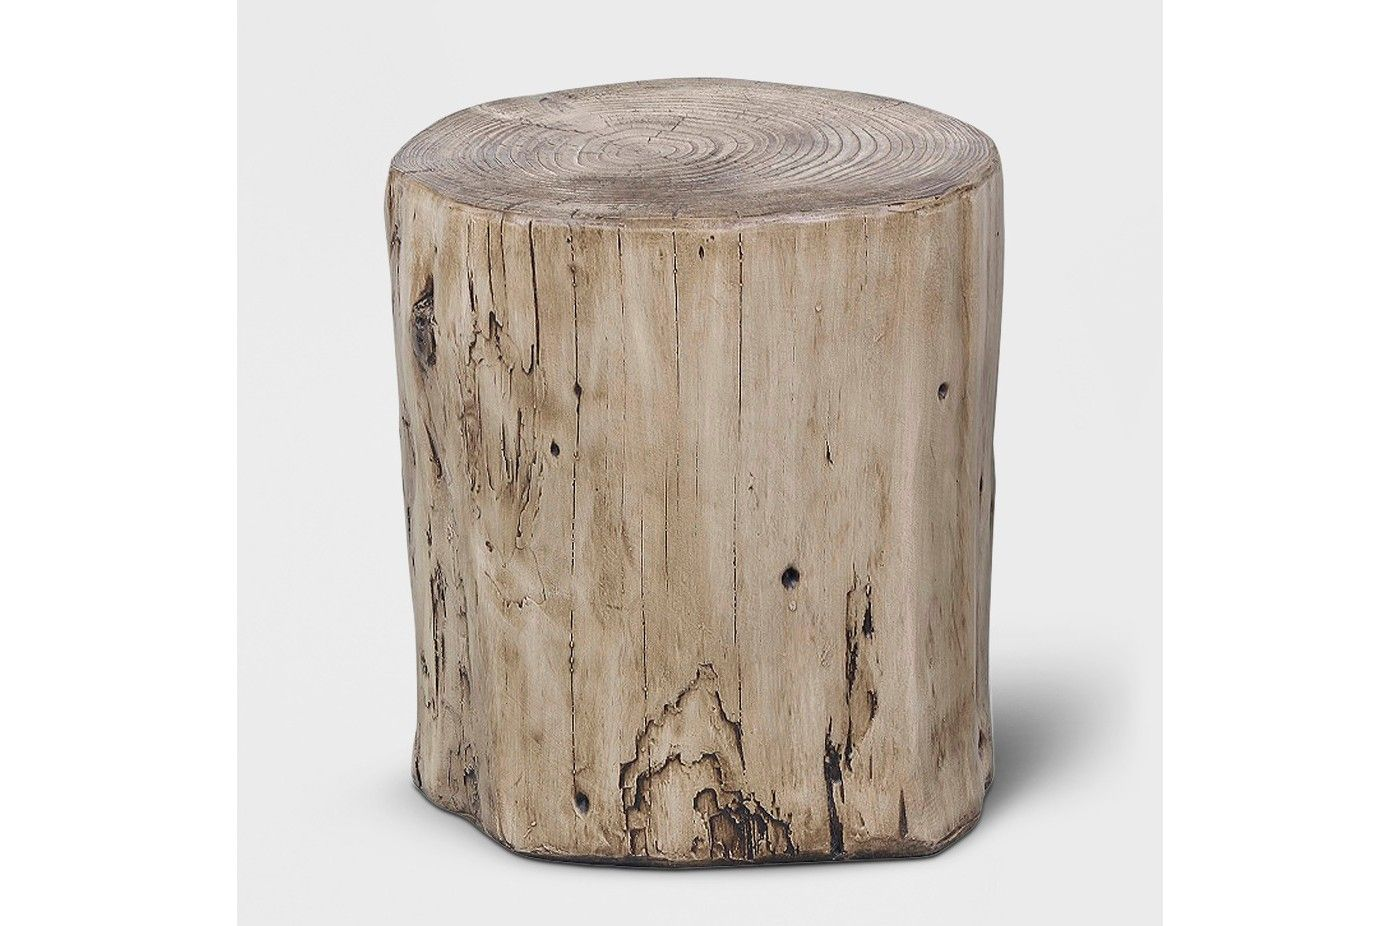 Surprising Faux Wood Stump Accent Table Gray Project 62 Image 1 Of Camellatalisay Diy Chair Ideas Camellatalisaycom